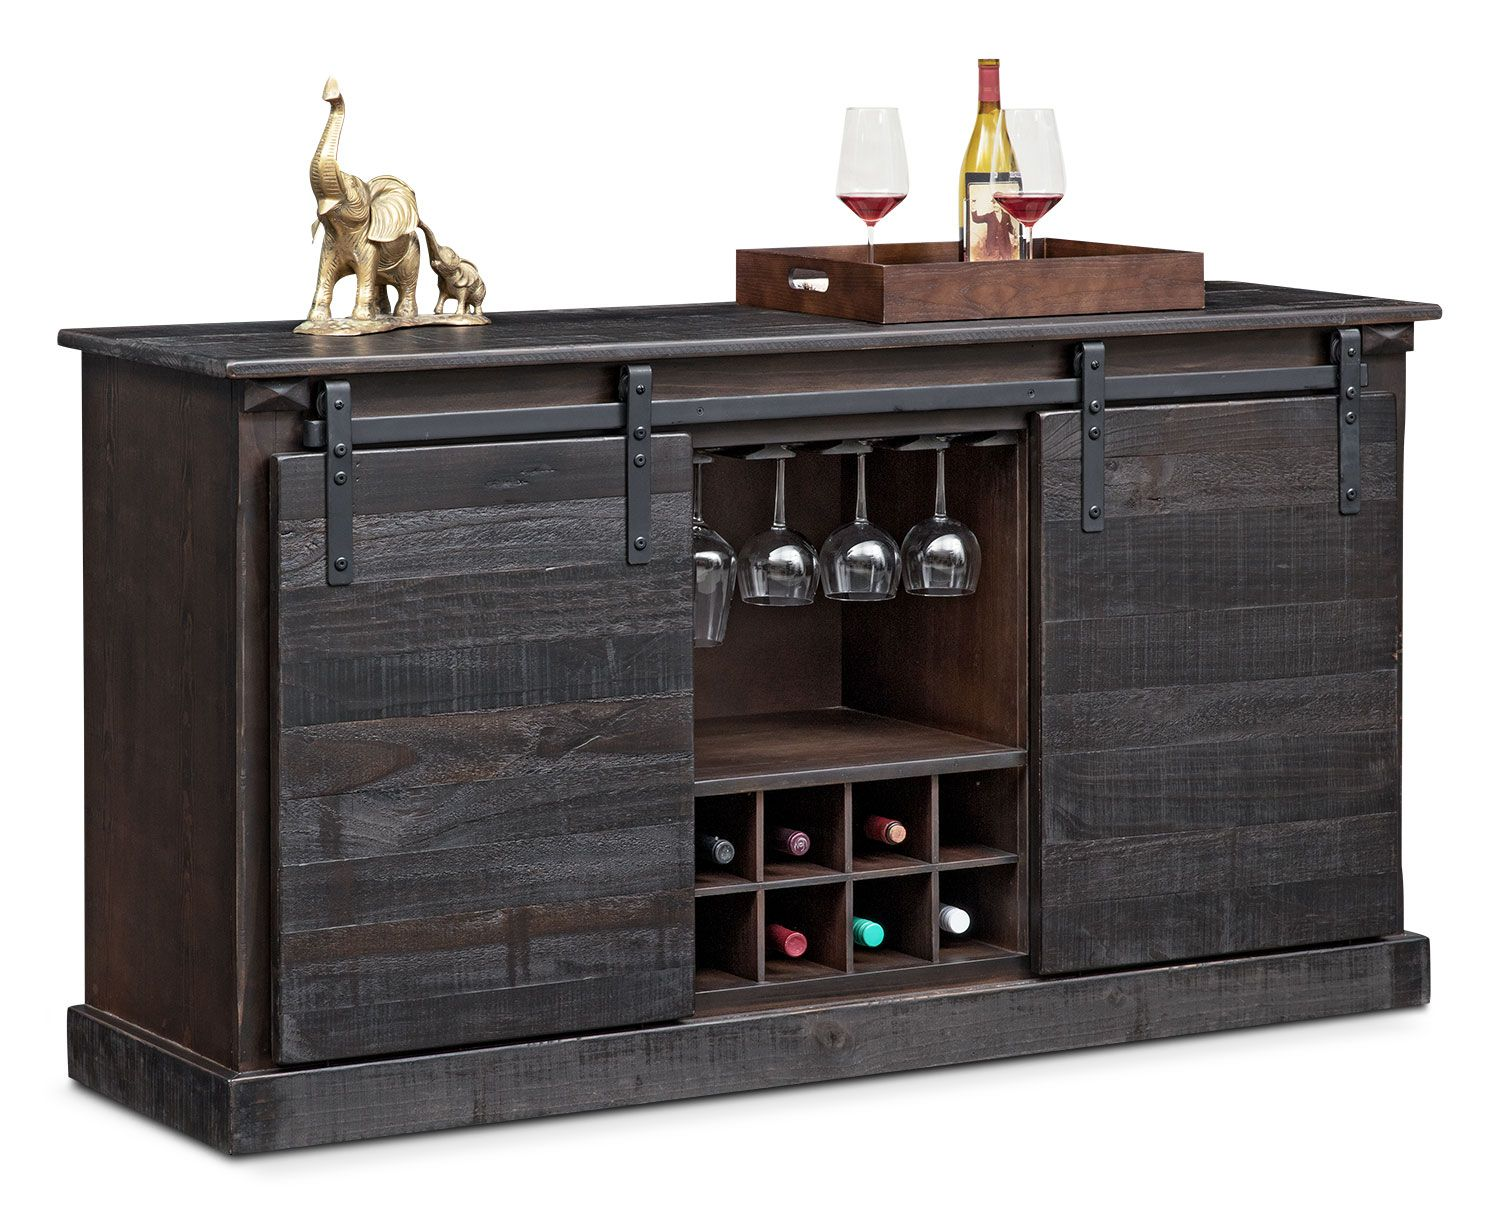 Uncork And Unwind Display Your Wine In Style With The Rustic